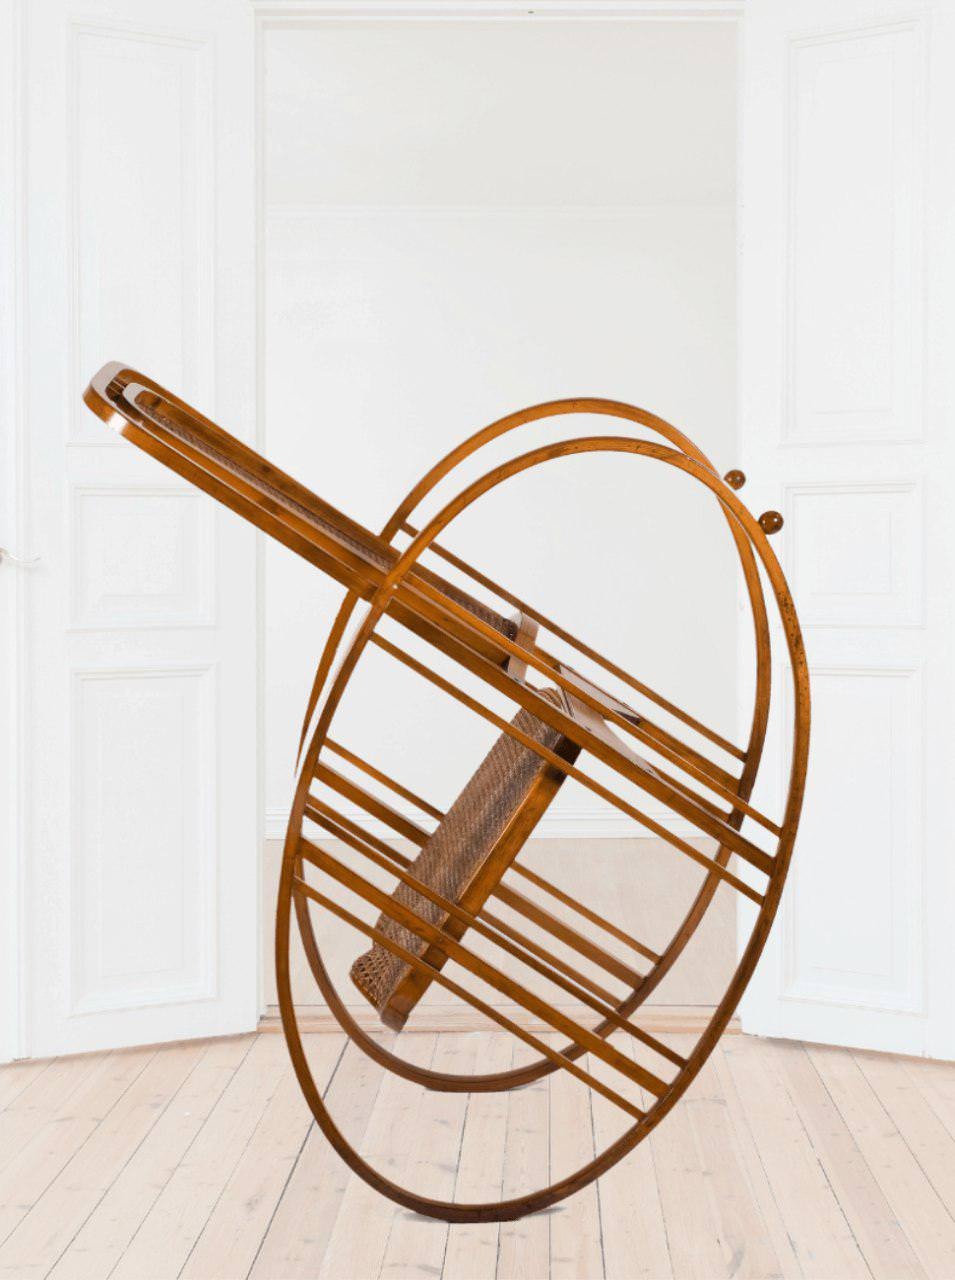 Volpe Roching Chair